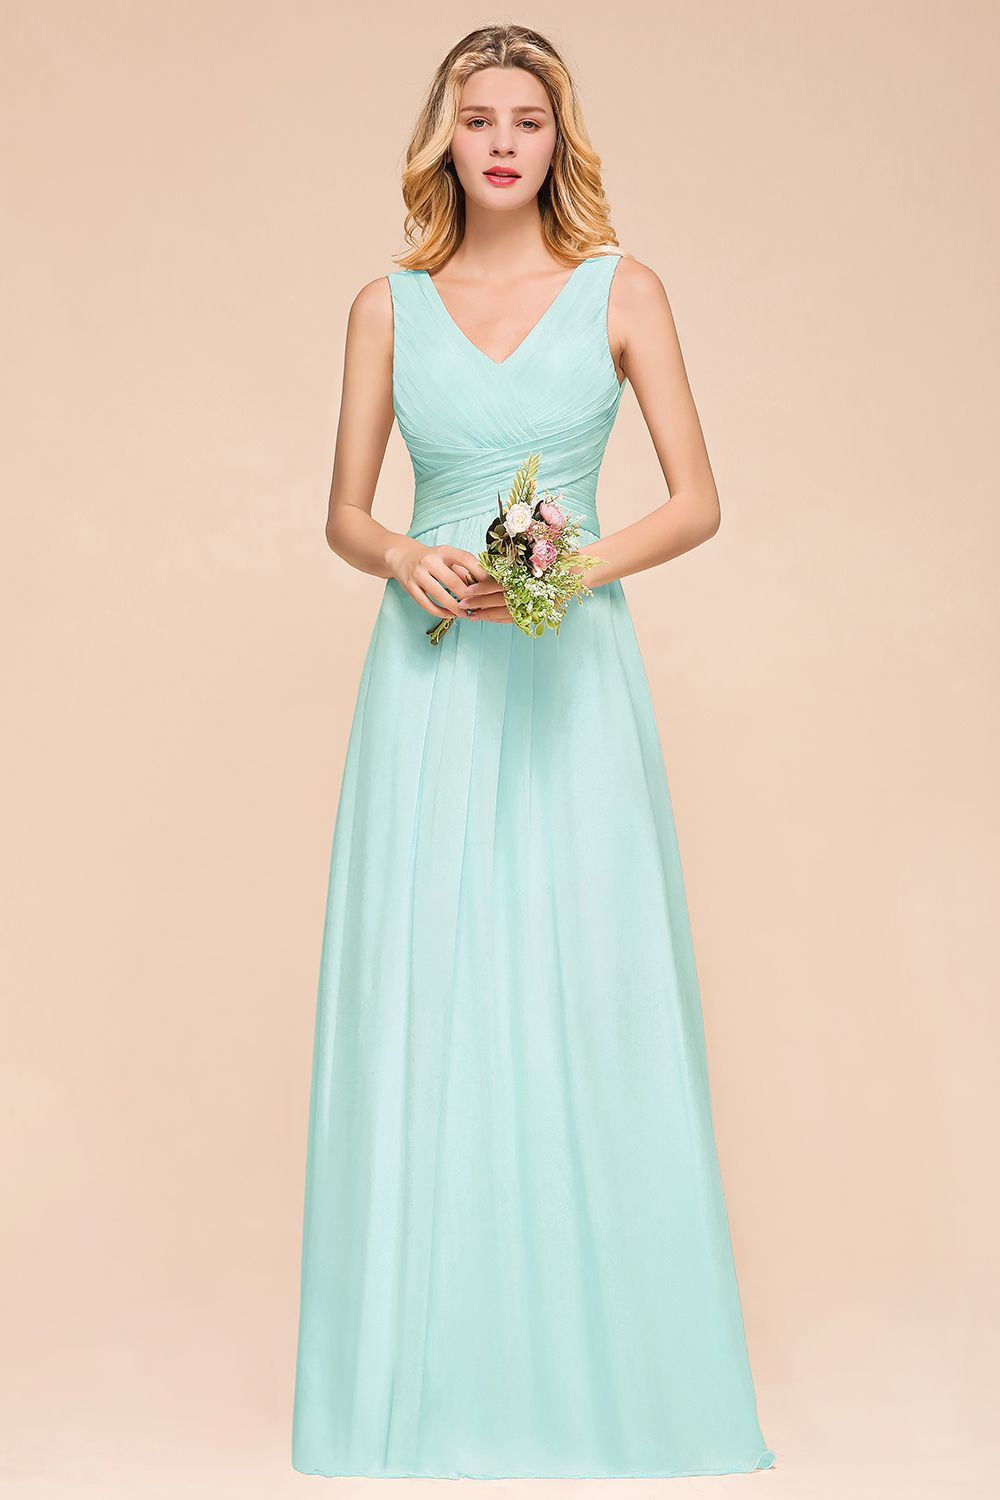 BMbridal Chic V-Neck Sleeveless Mint Green Bridesmaid Dresses with Ruffle